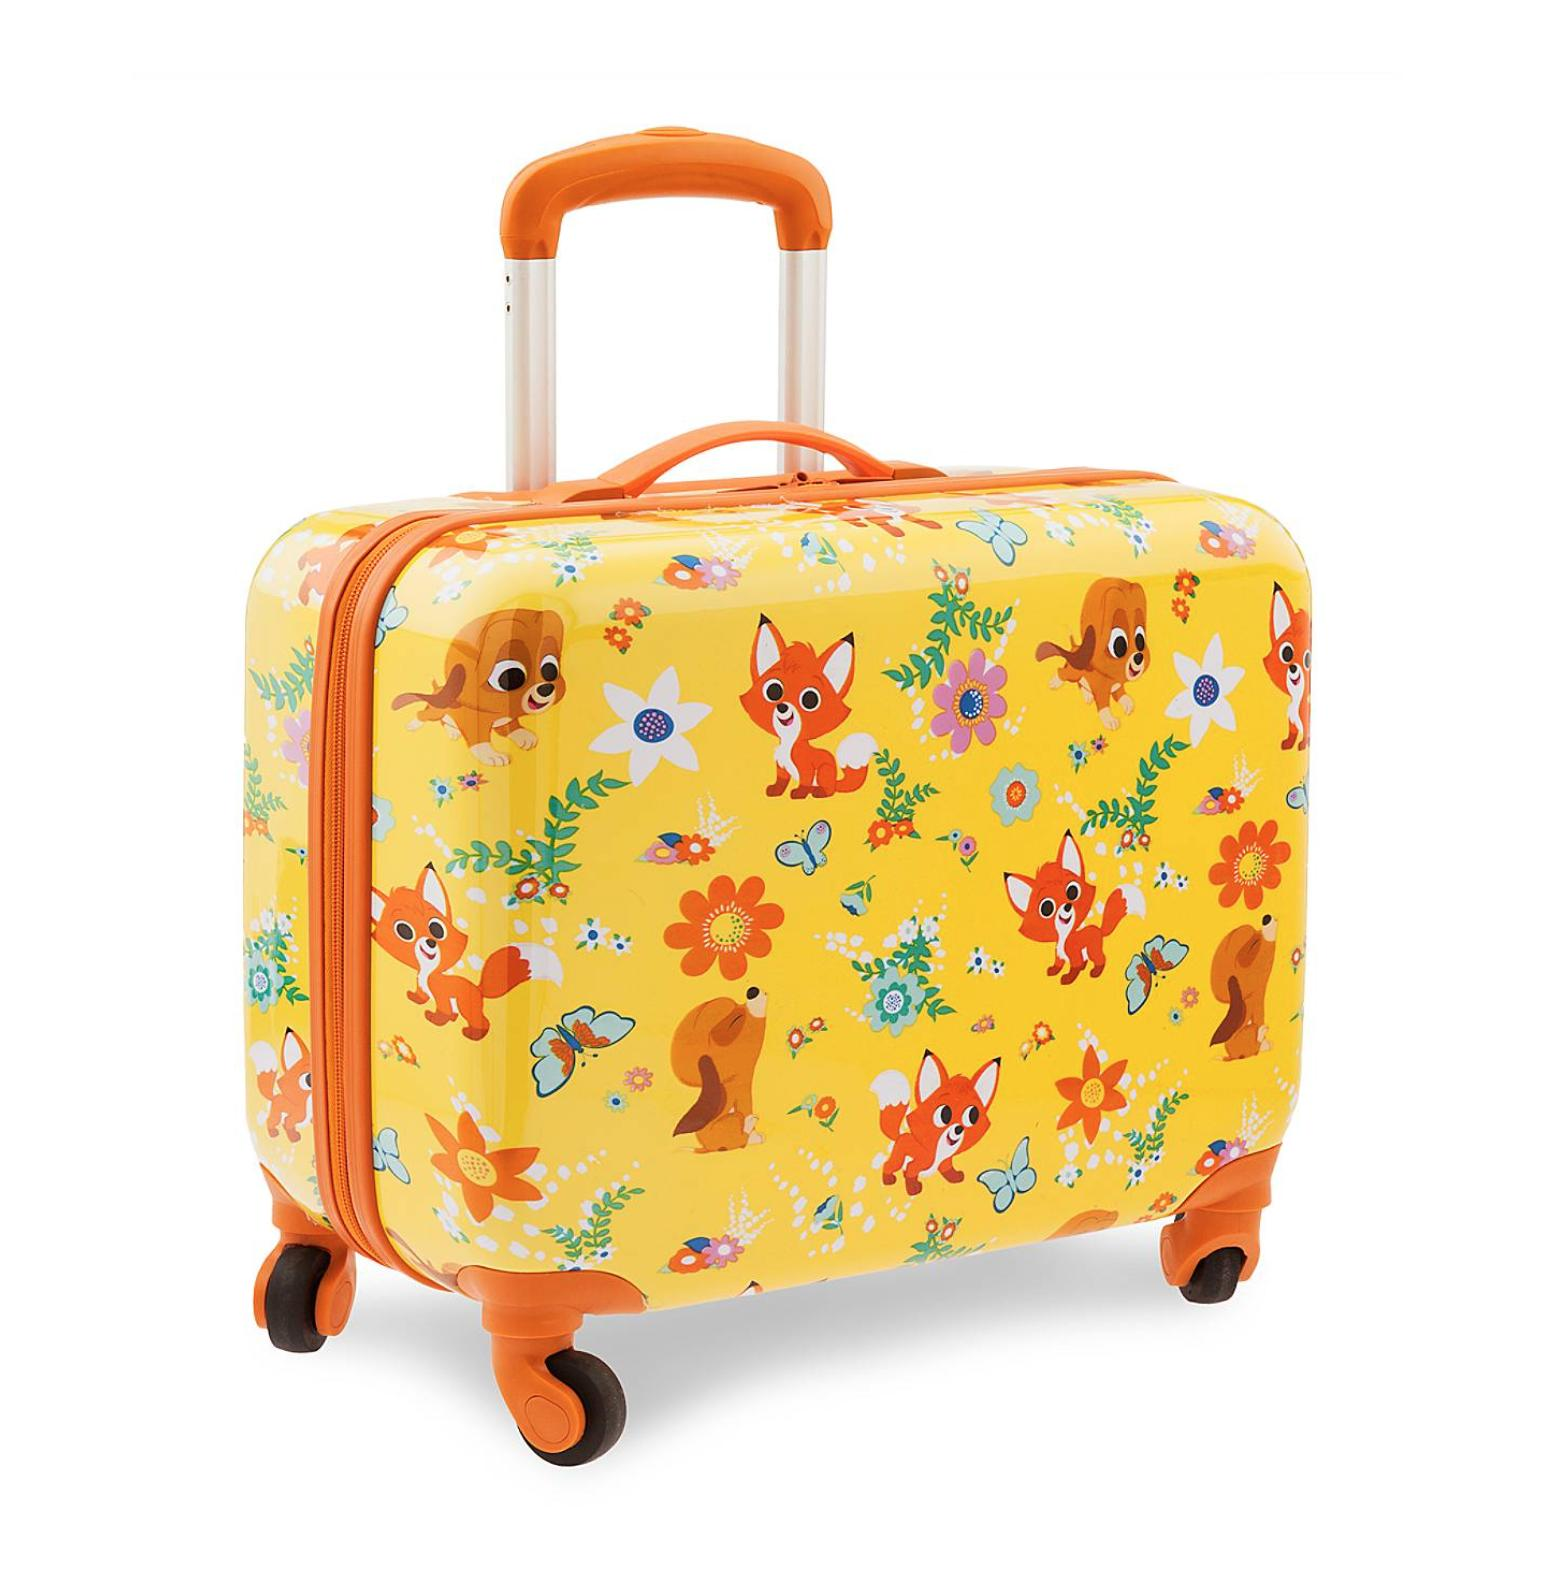 nwt the fox and the hound suitcase